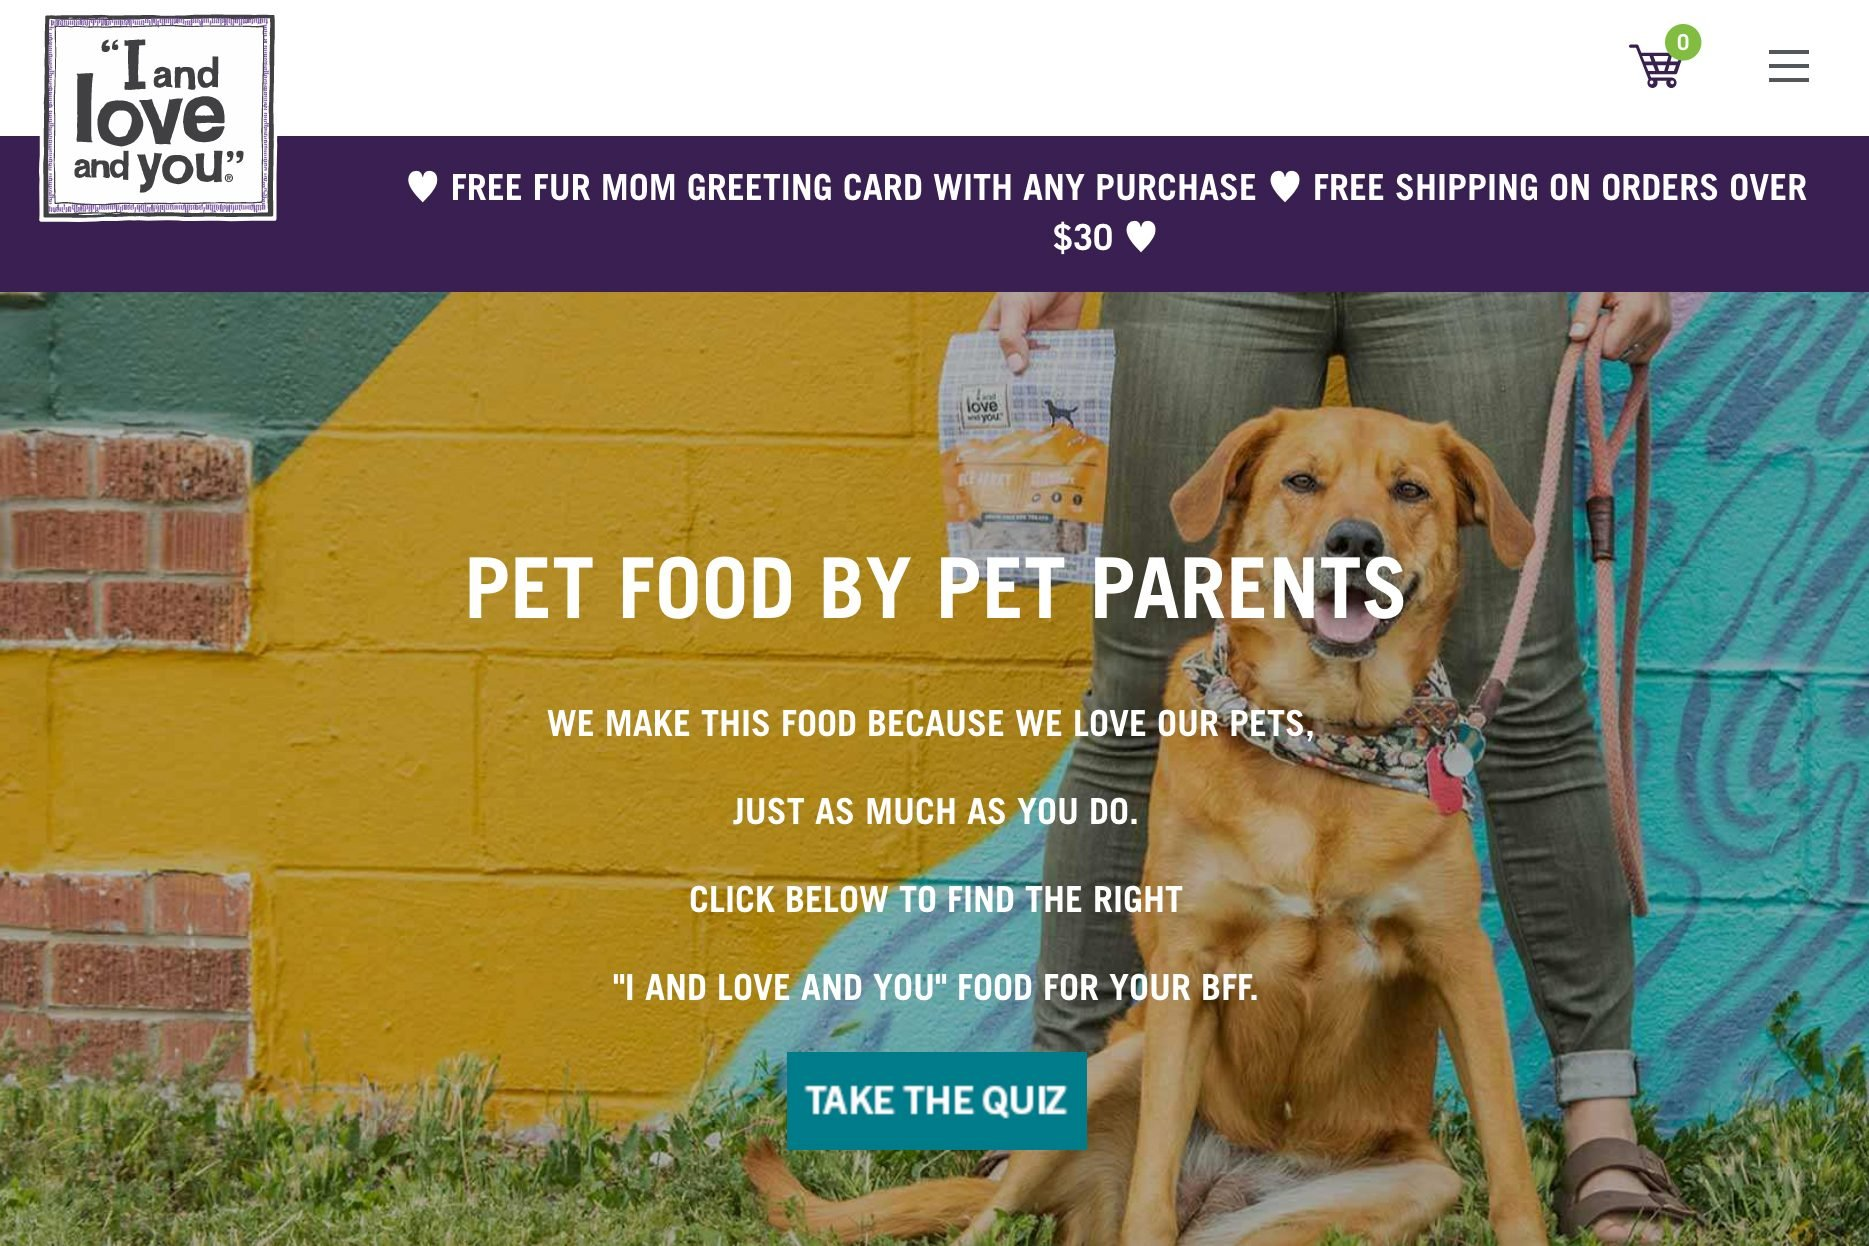 Pet food, treats, and supplies: I and Love and You